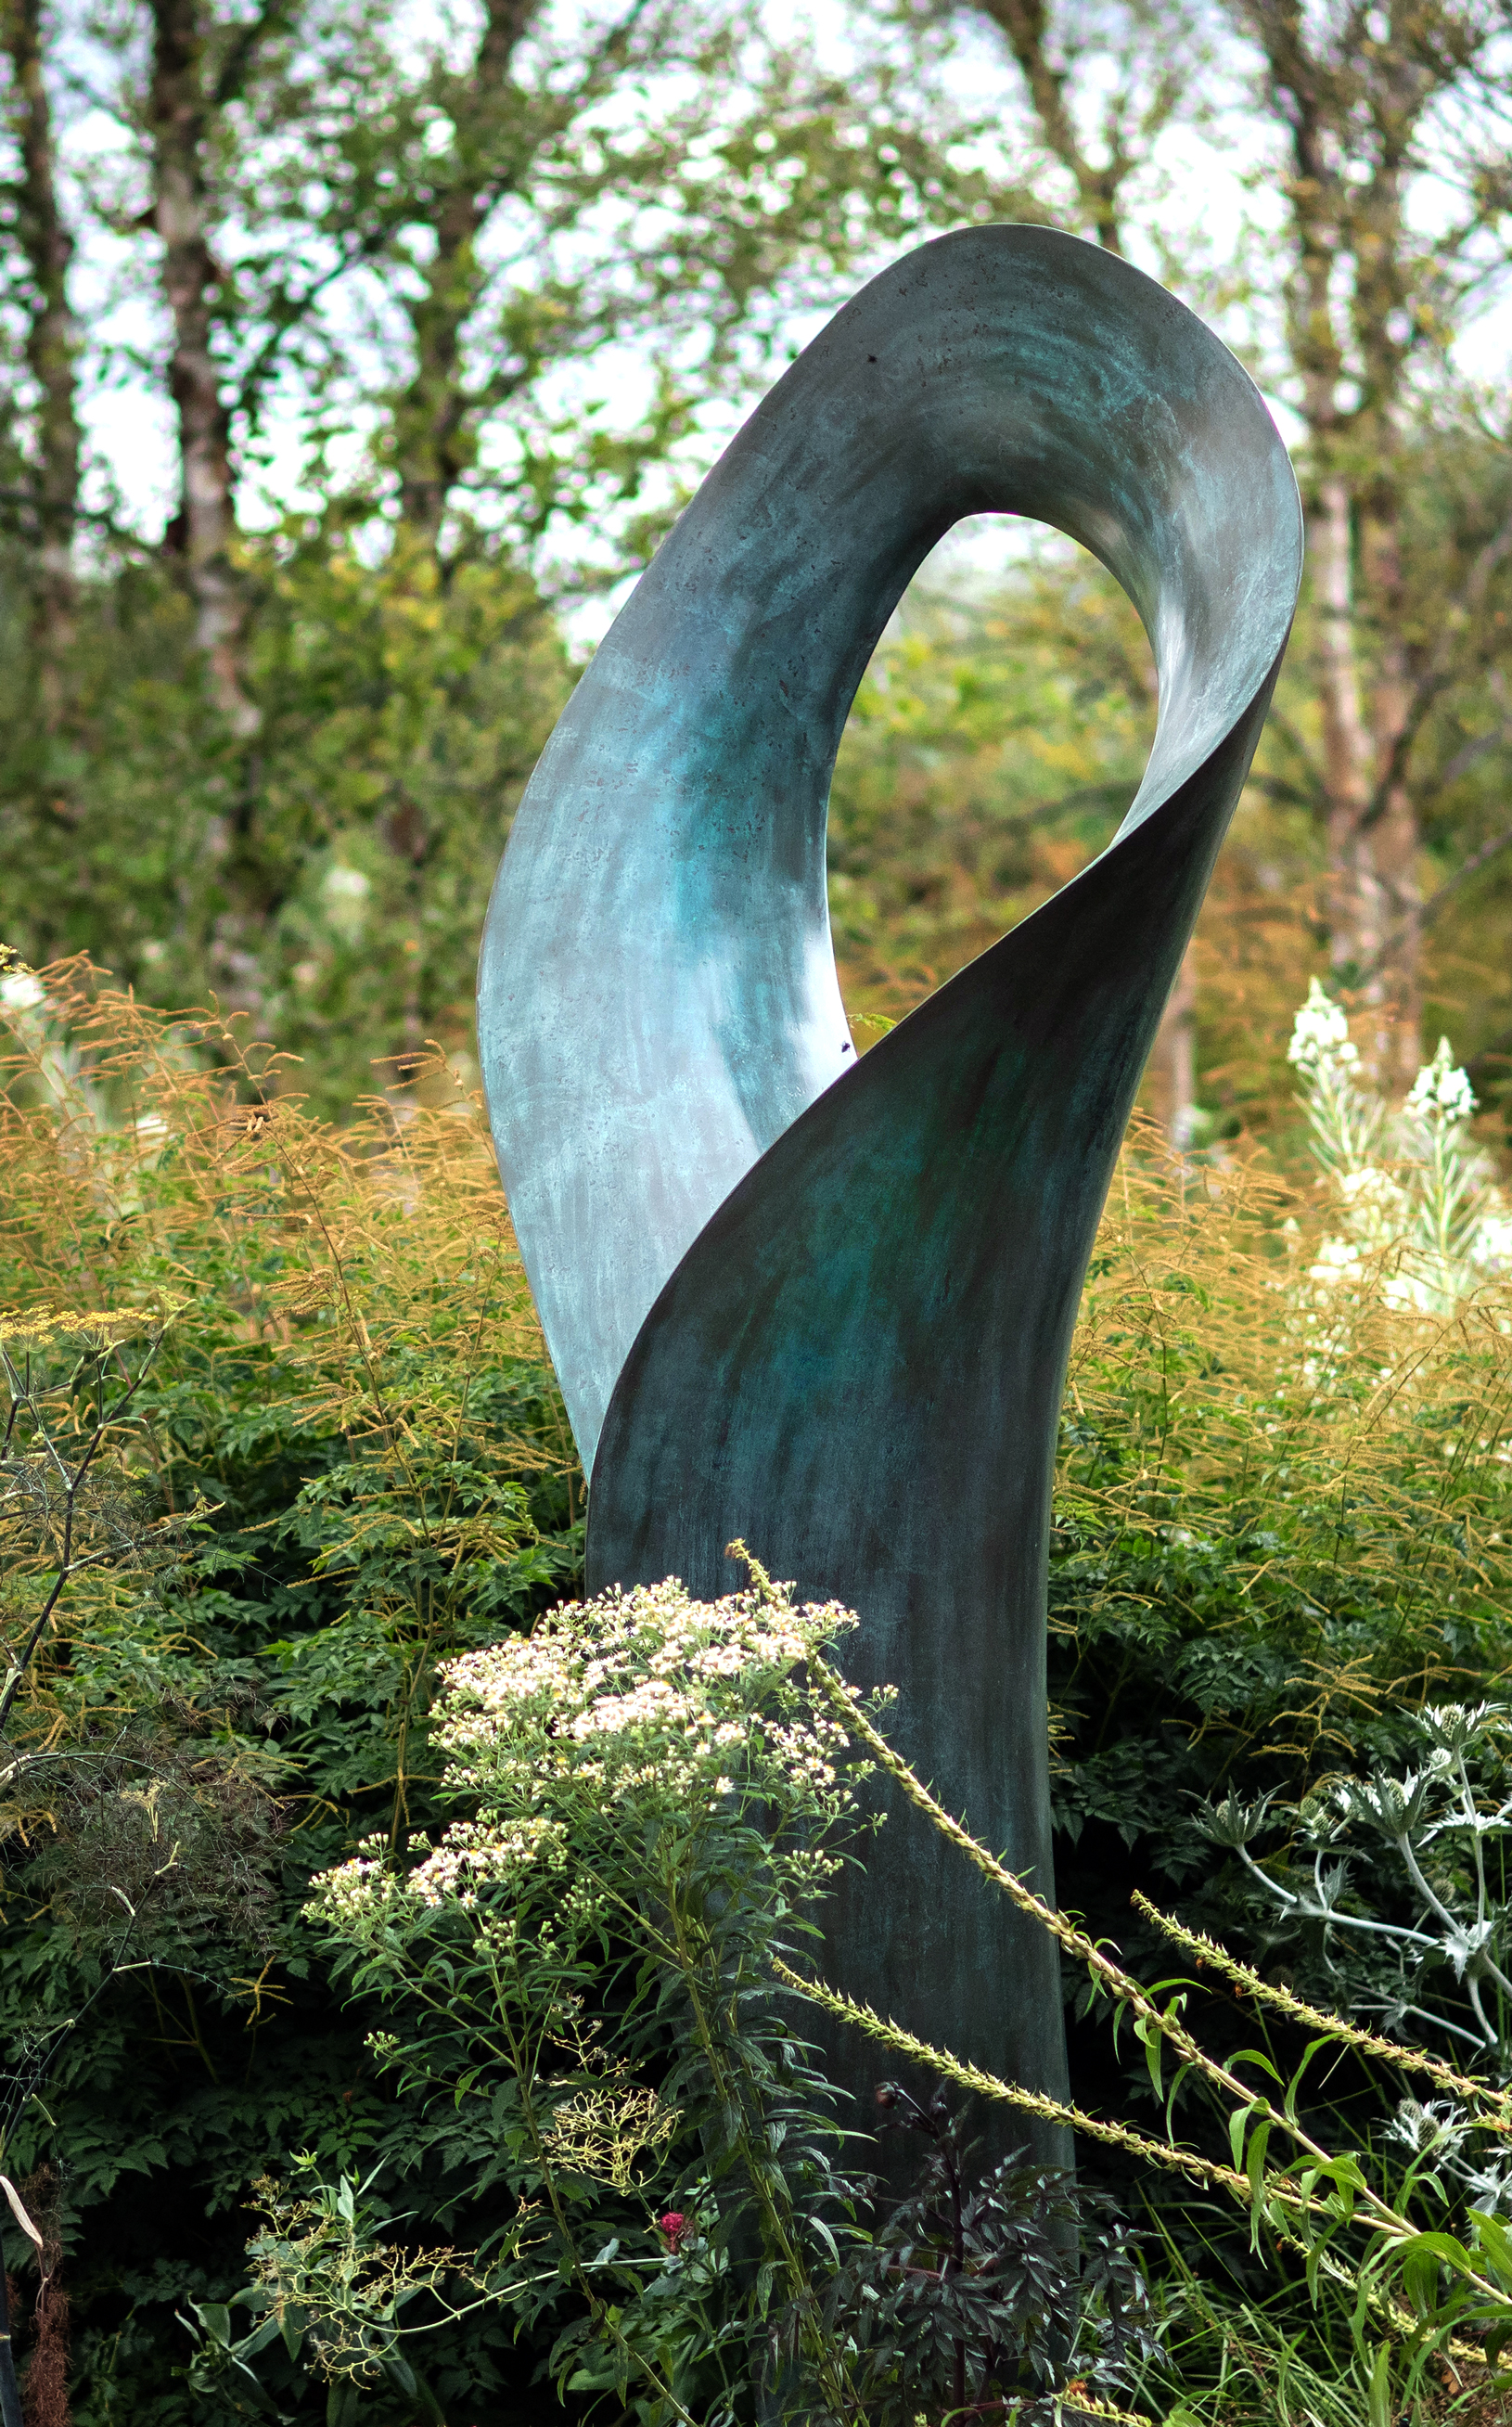 Swirl Sculpture by Ben Barrell